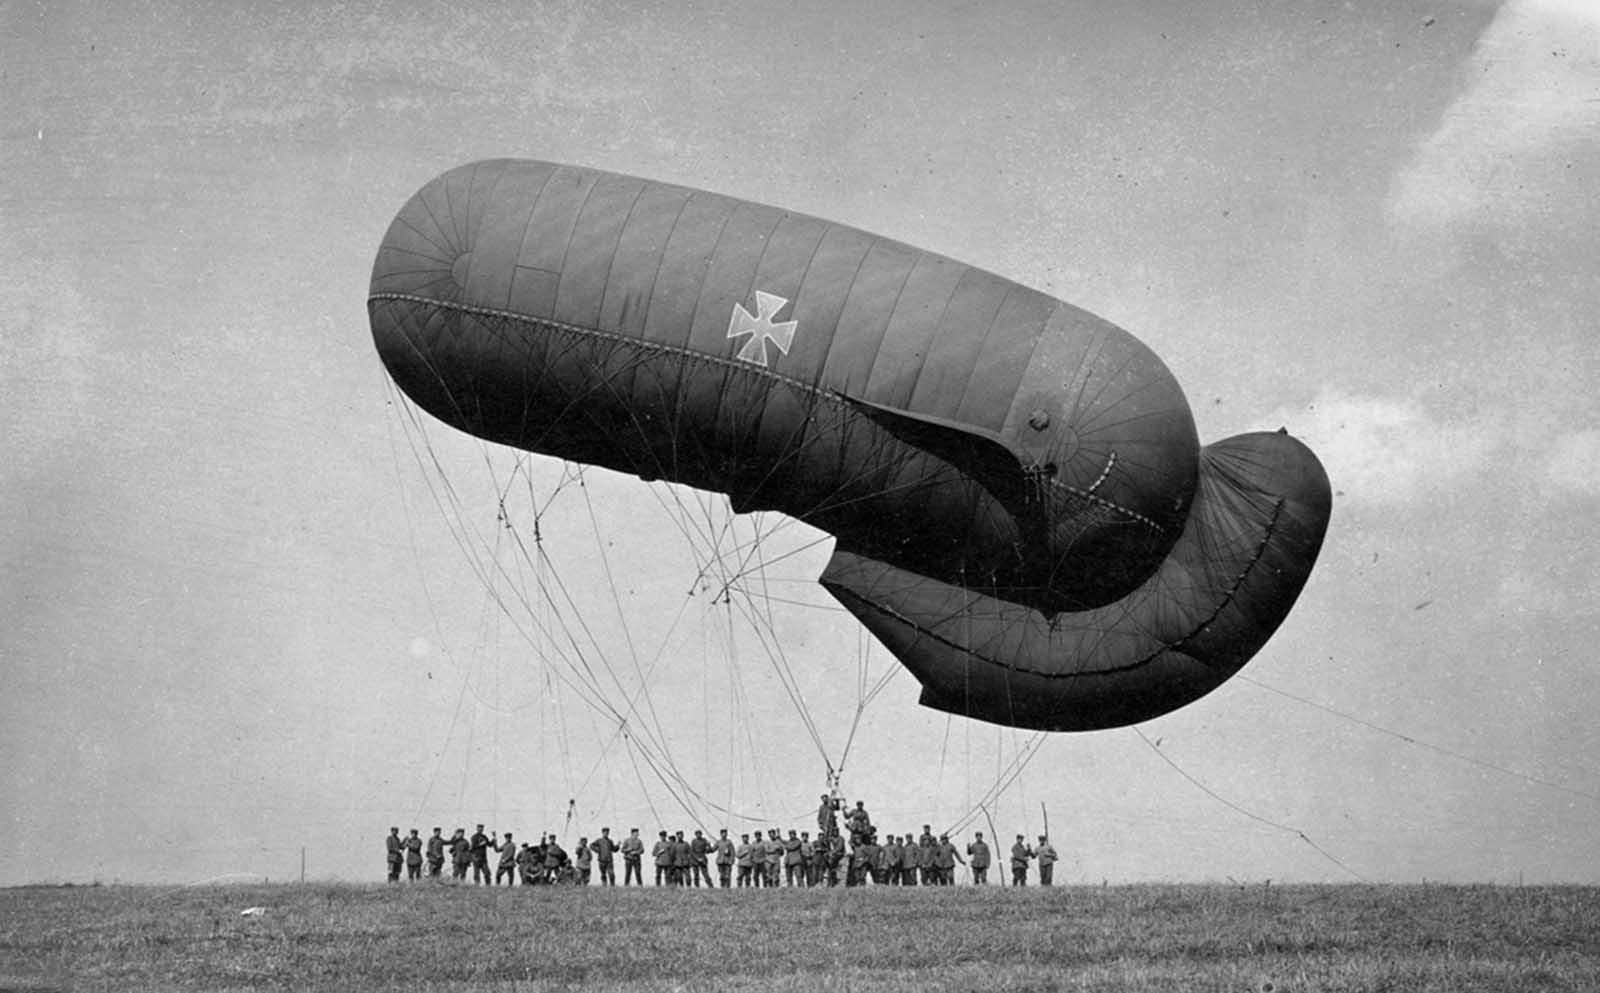 German captive balloon at Equancourt, France, on September 22, 1916. Observation balloons were used by both sides to gain an advantage of height across relatively flat terrain. Observers were lifted in a small gondola suspended below the hydrogen-filled balloons. Hundreds were shot down during the course of the war.